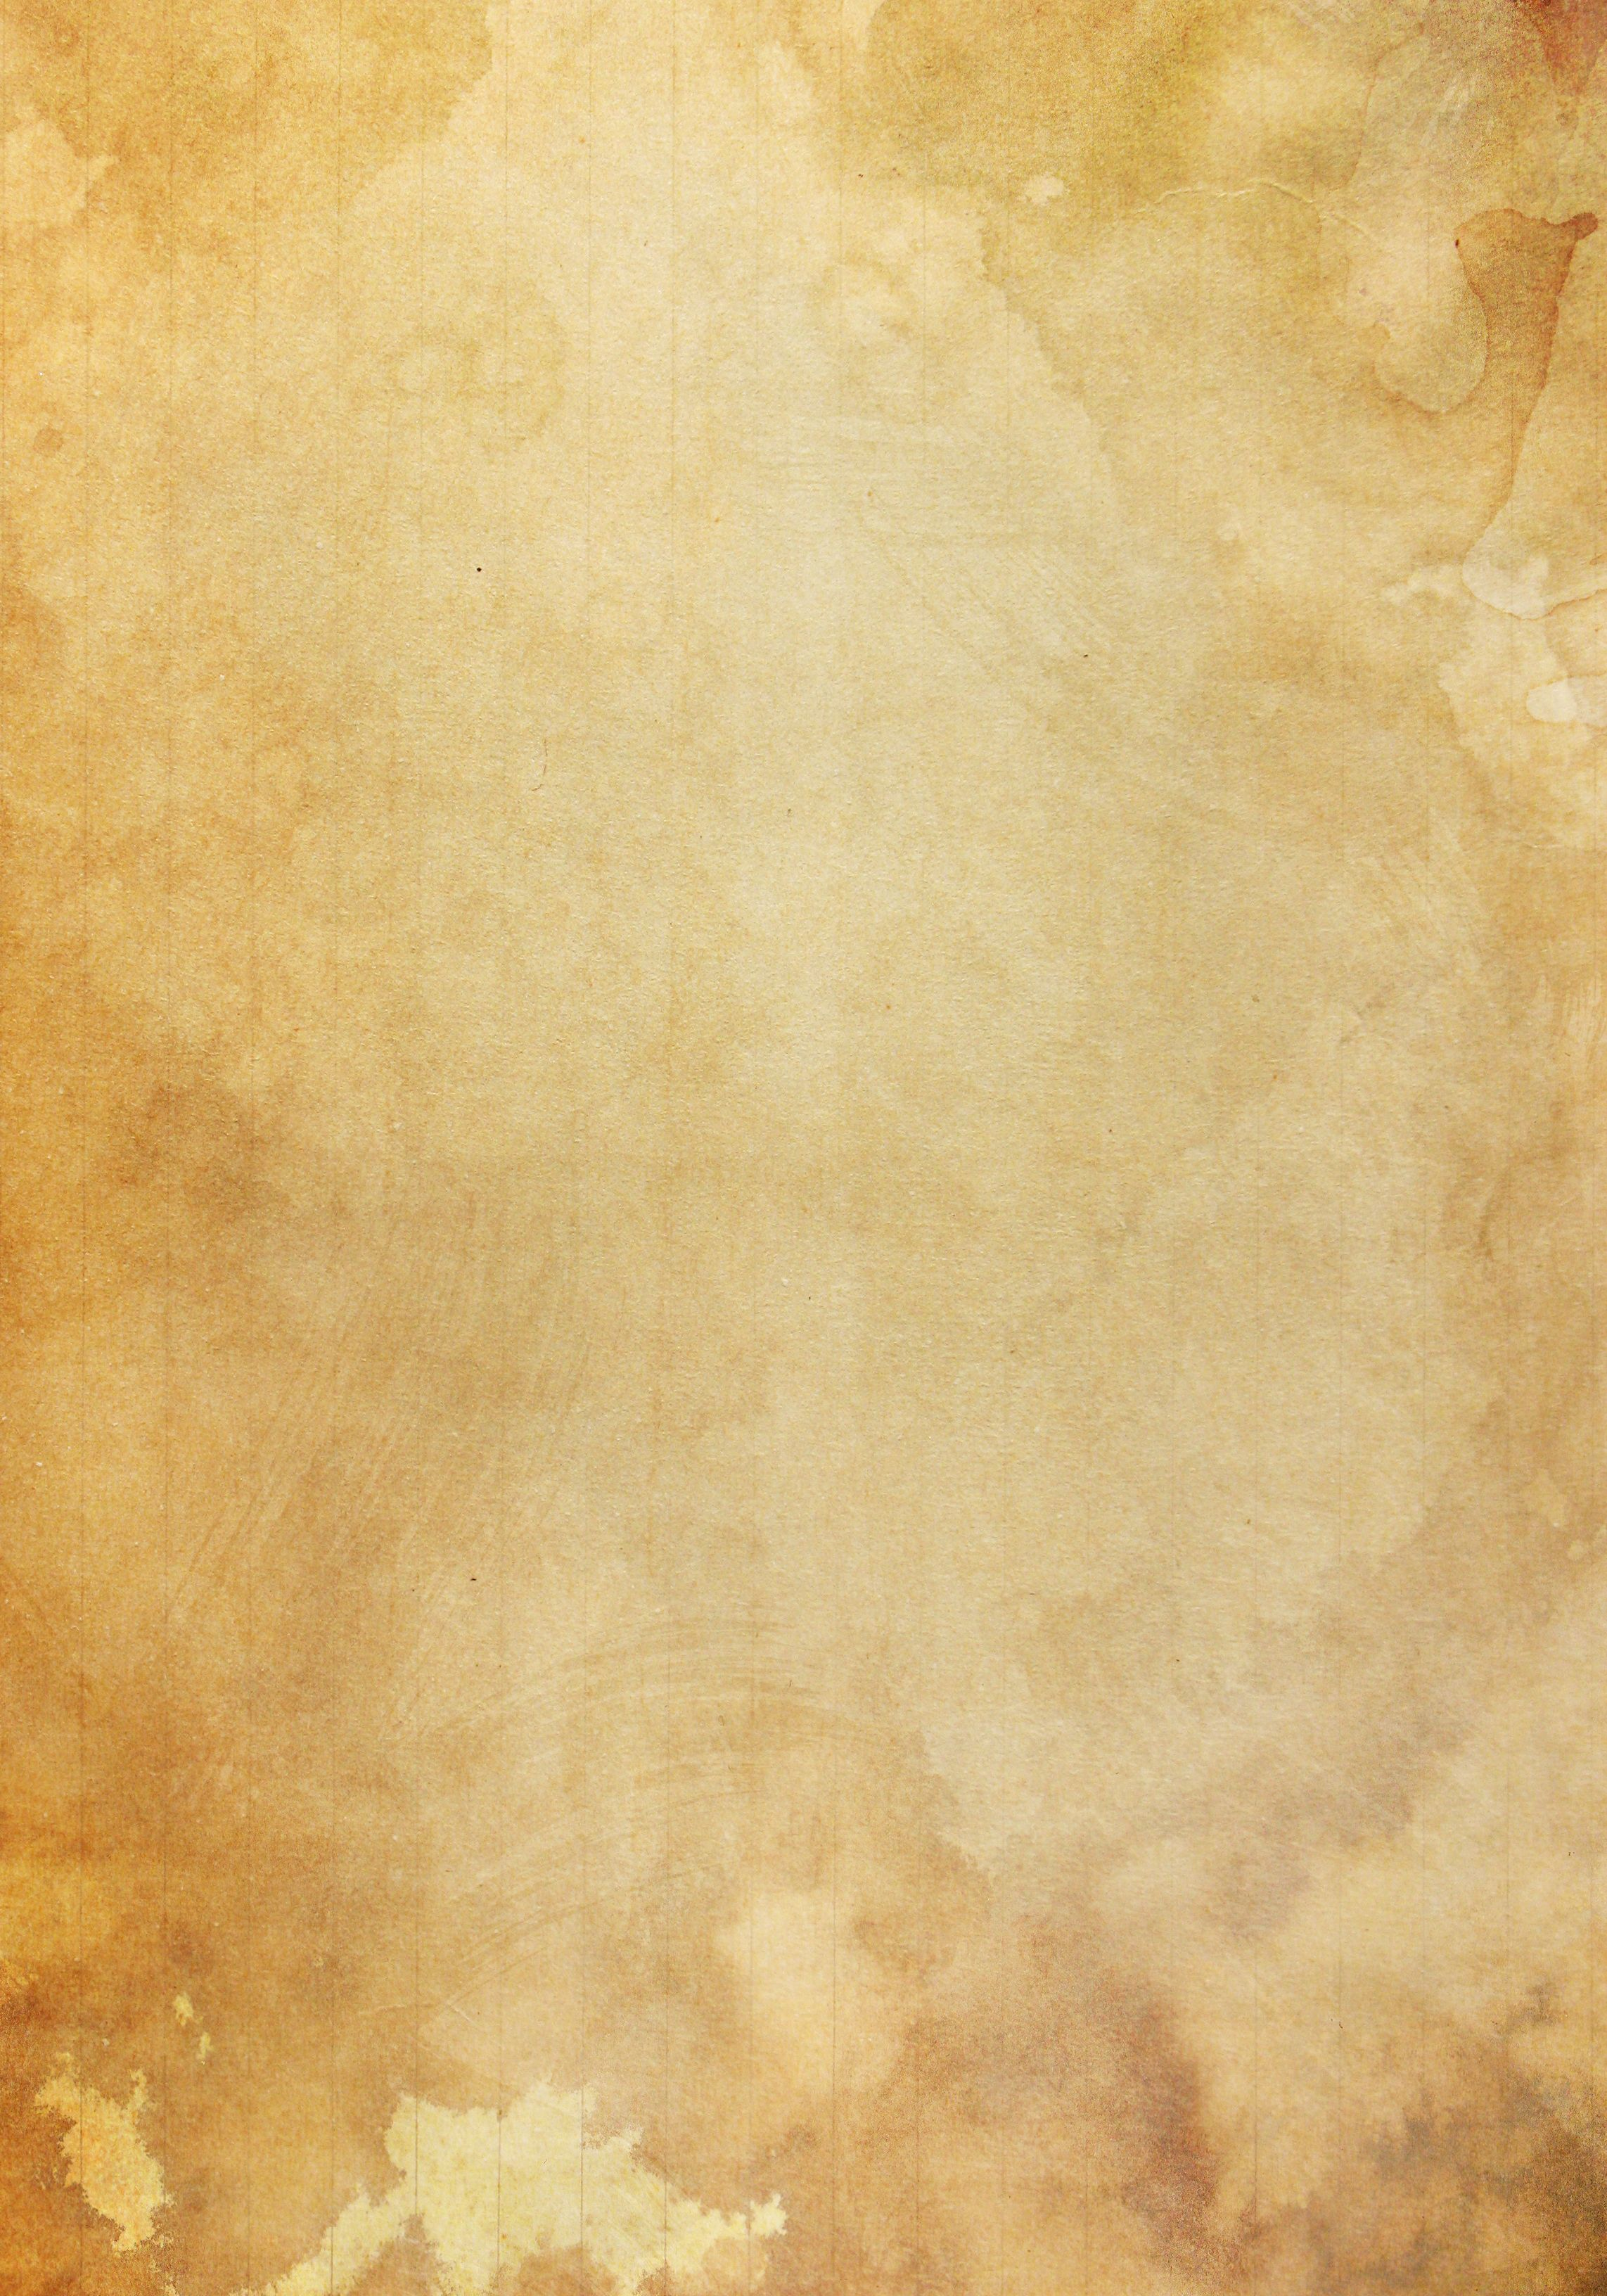 Tan Stained Paper Texture Old Paper Background Paper Texture